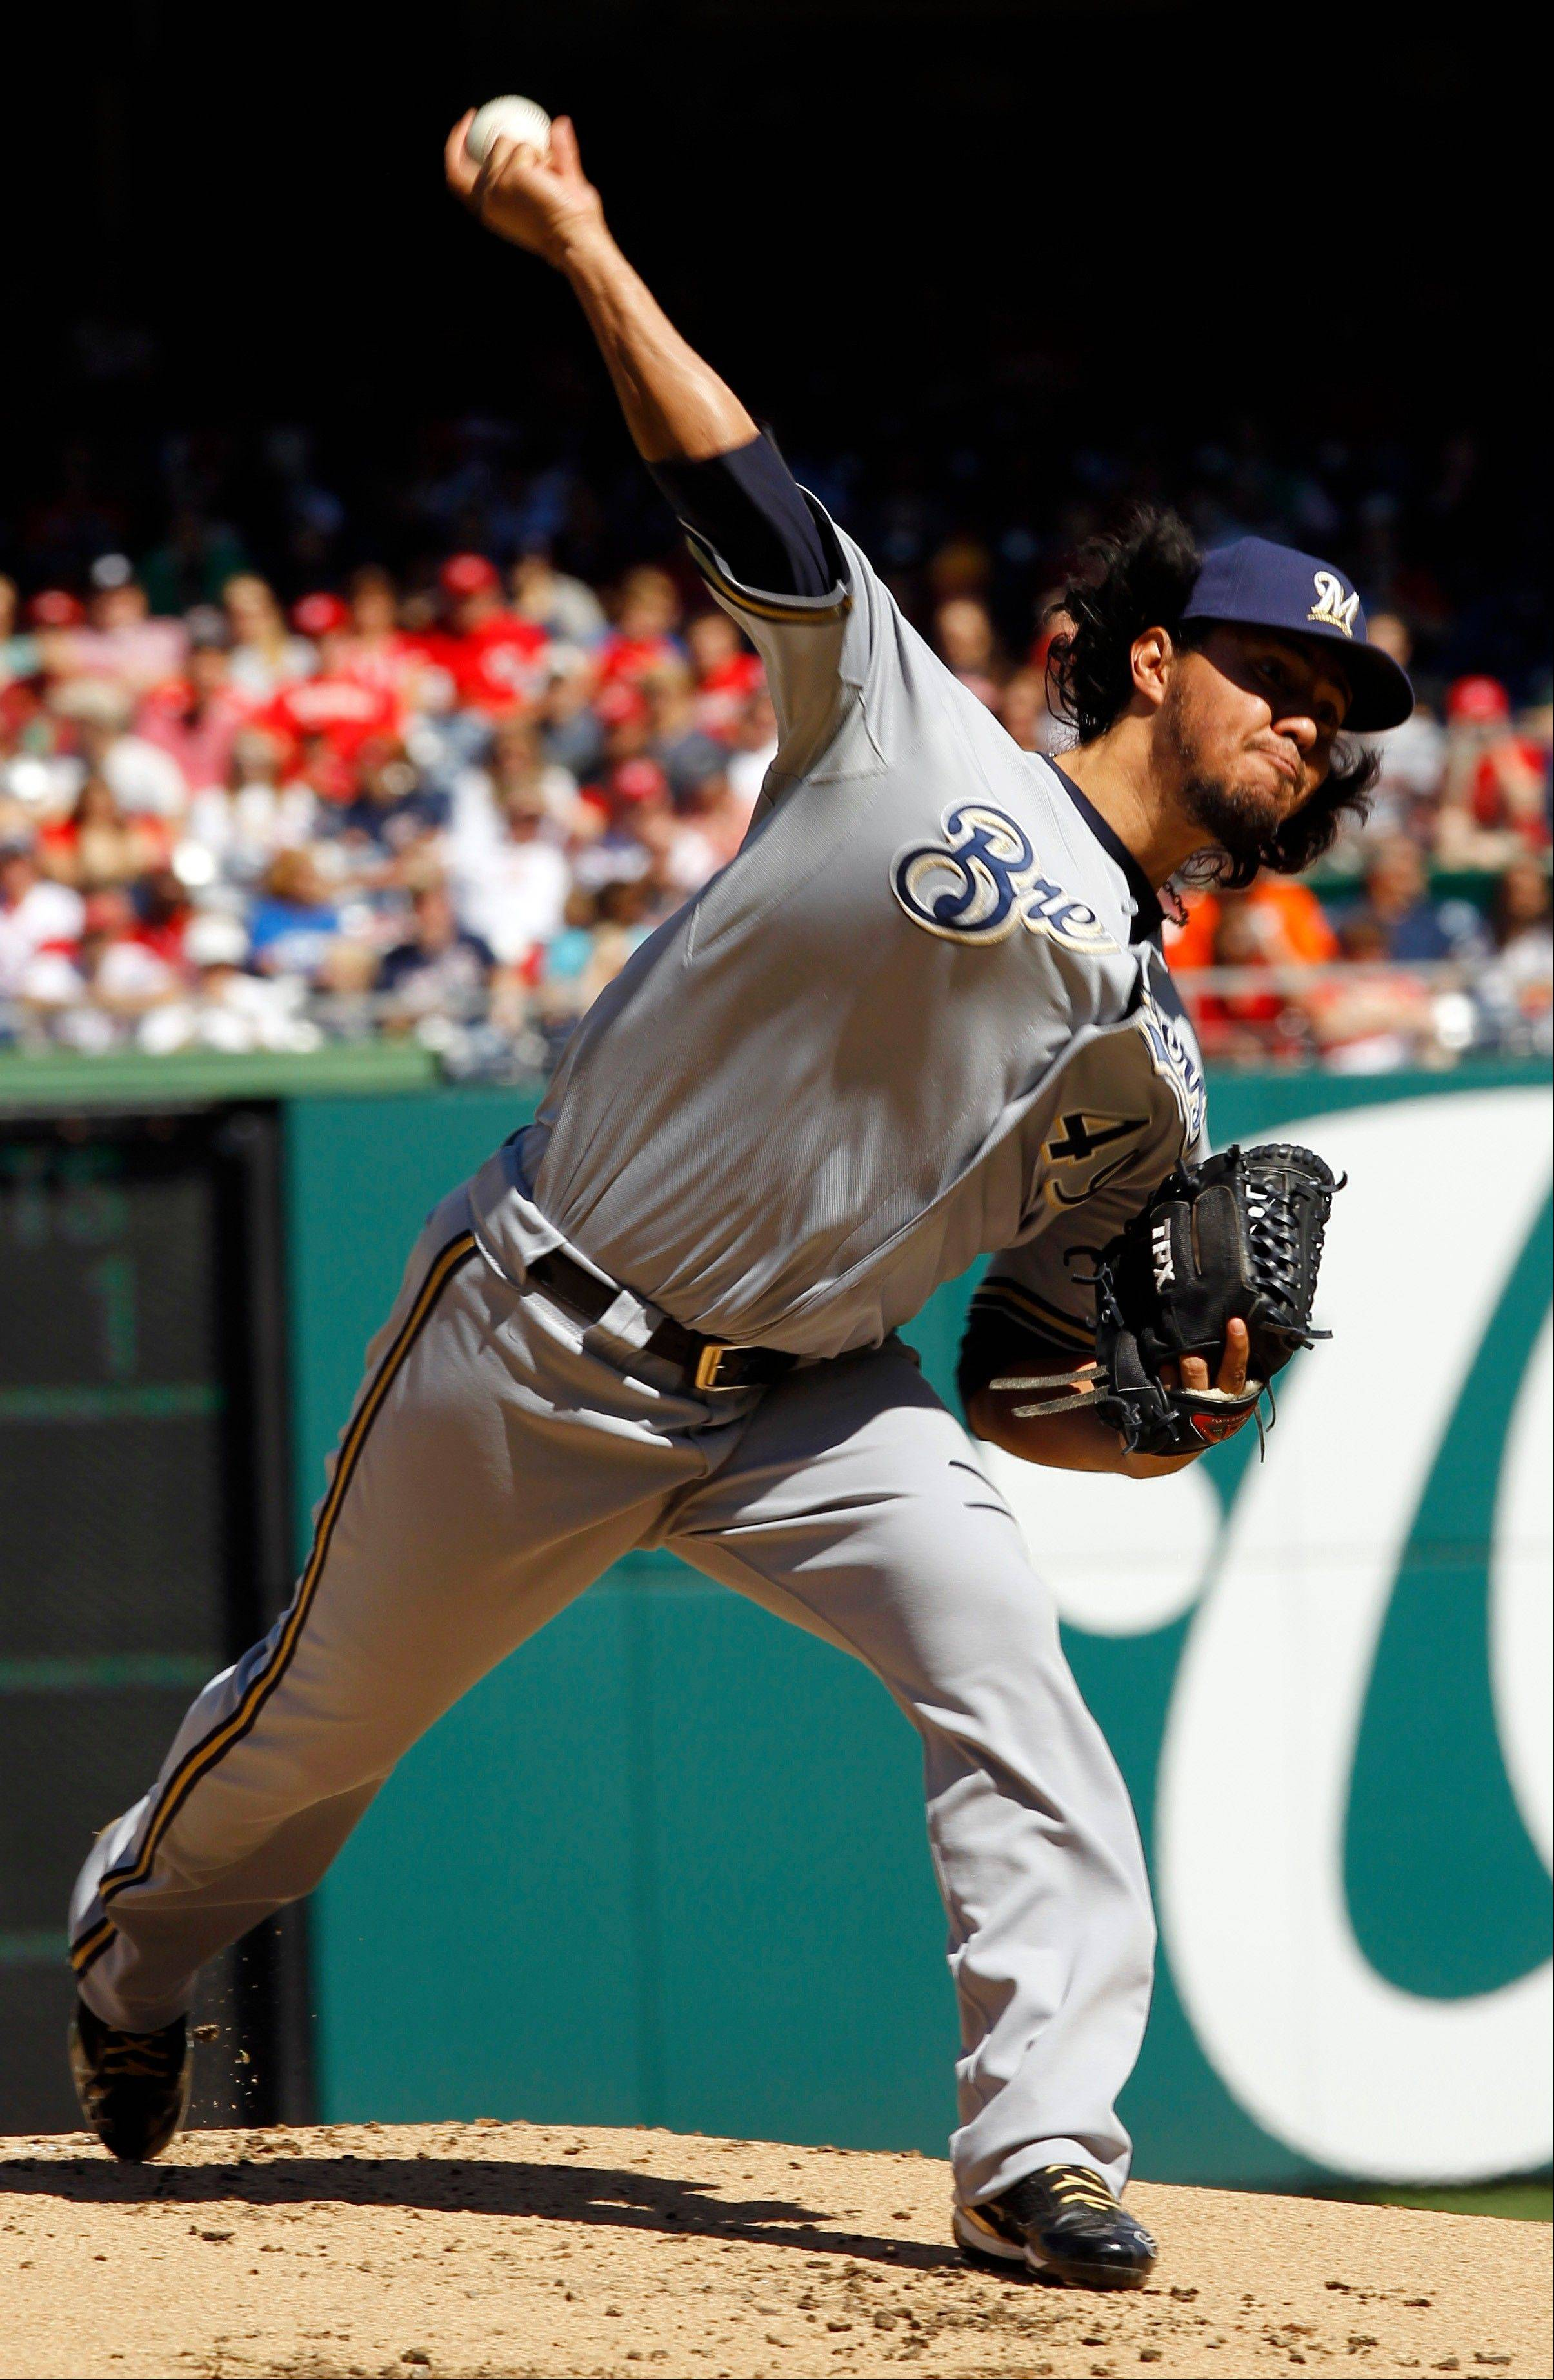 Milwaukee Brewers starting pitcher Yovani Gallardo went five innings Sunday, allowing two earned runs and six hits on the road against Washington. The Brewers have won Gallardo's last 11 starts.